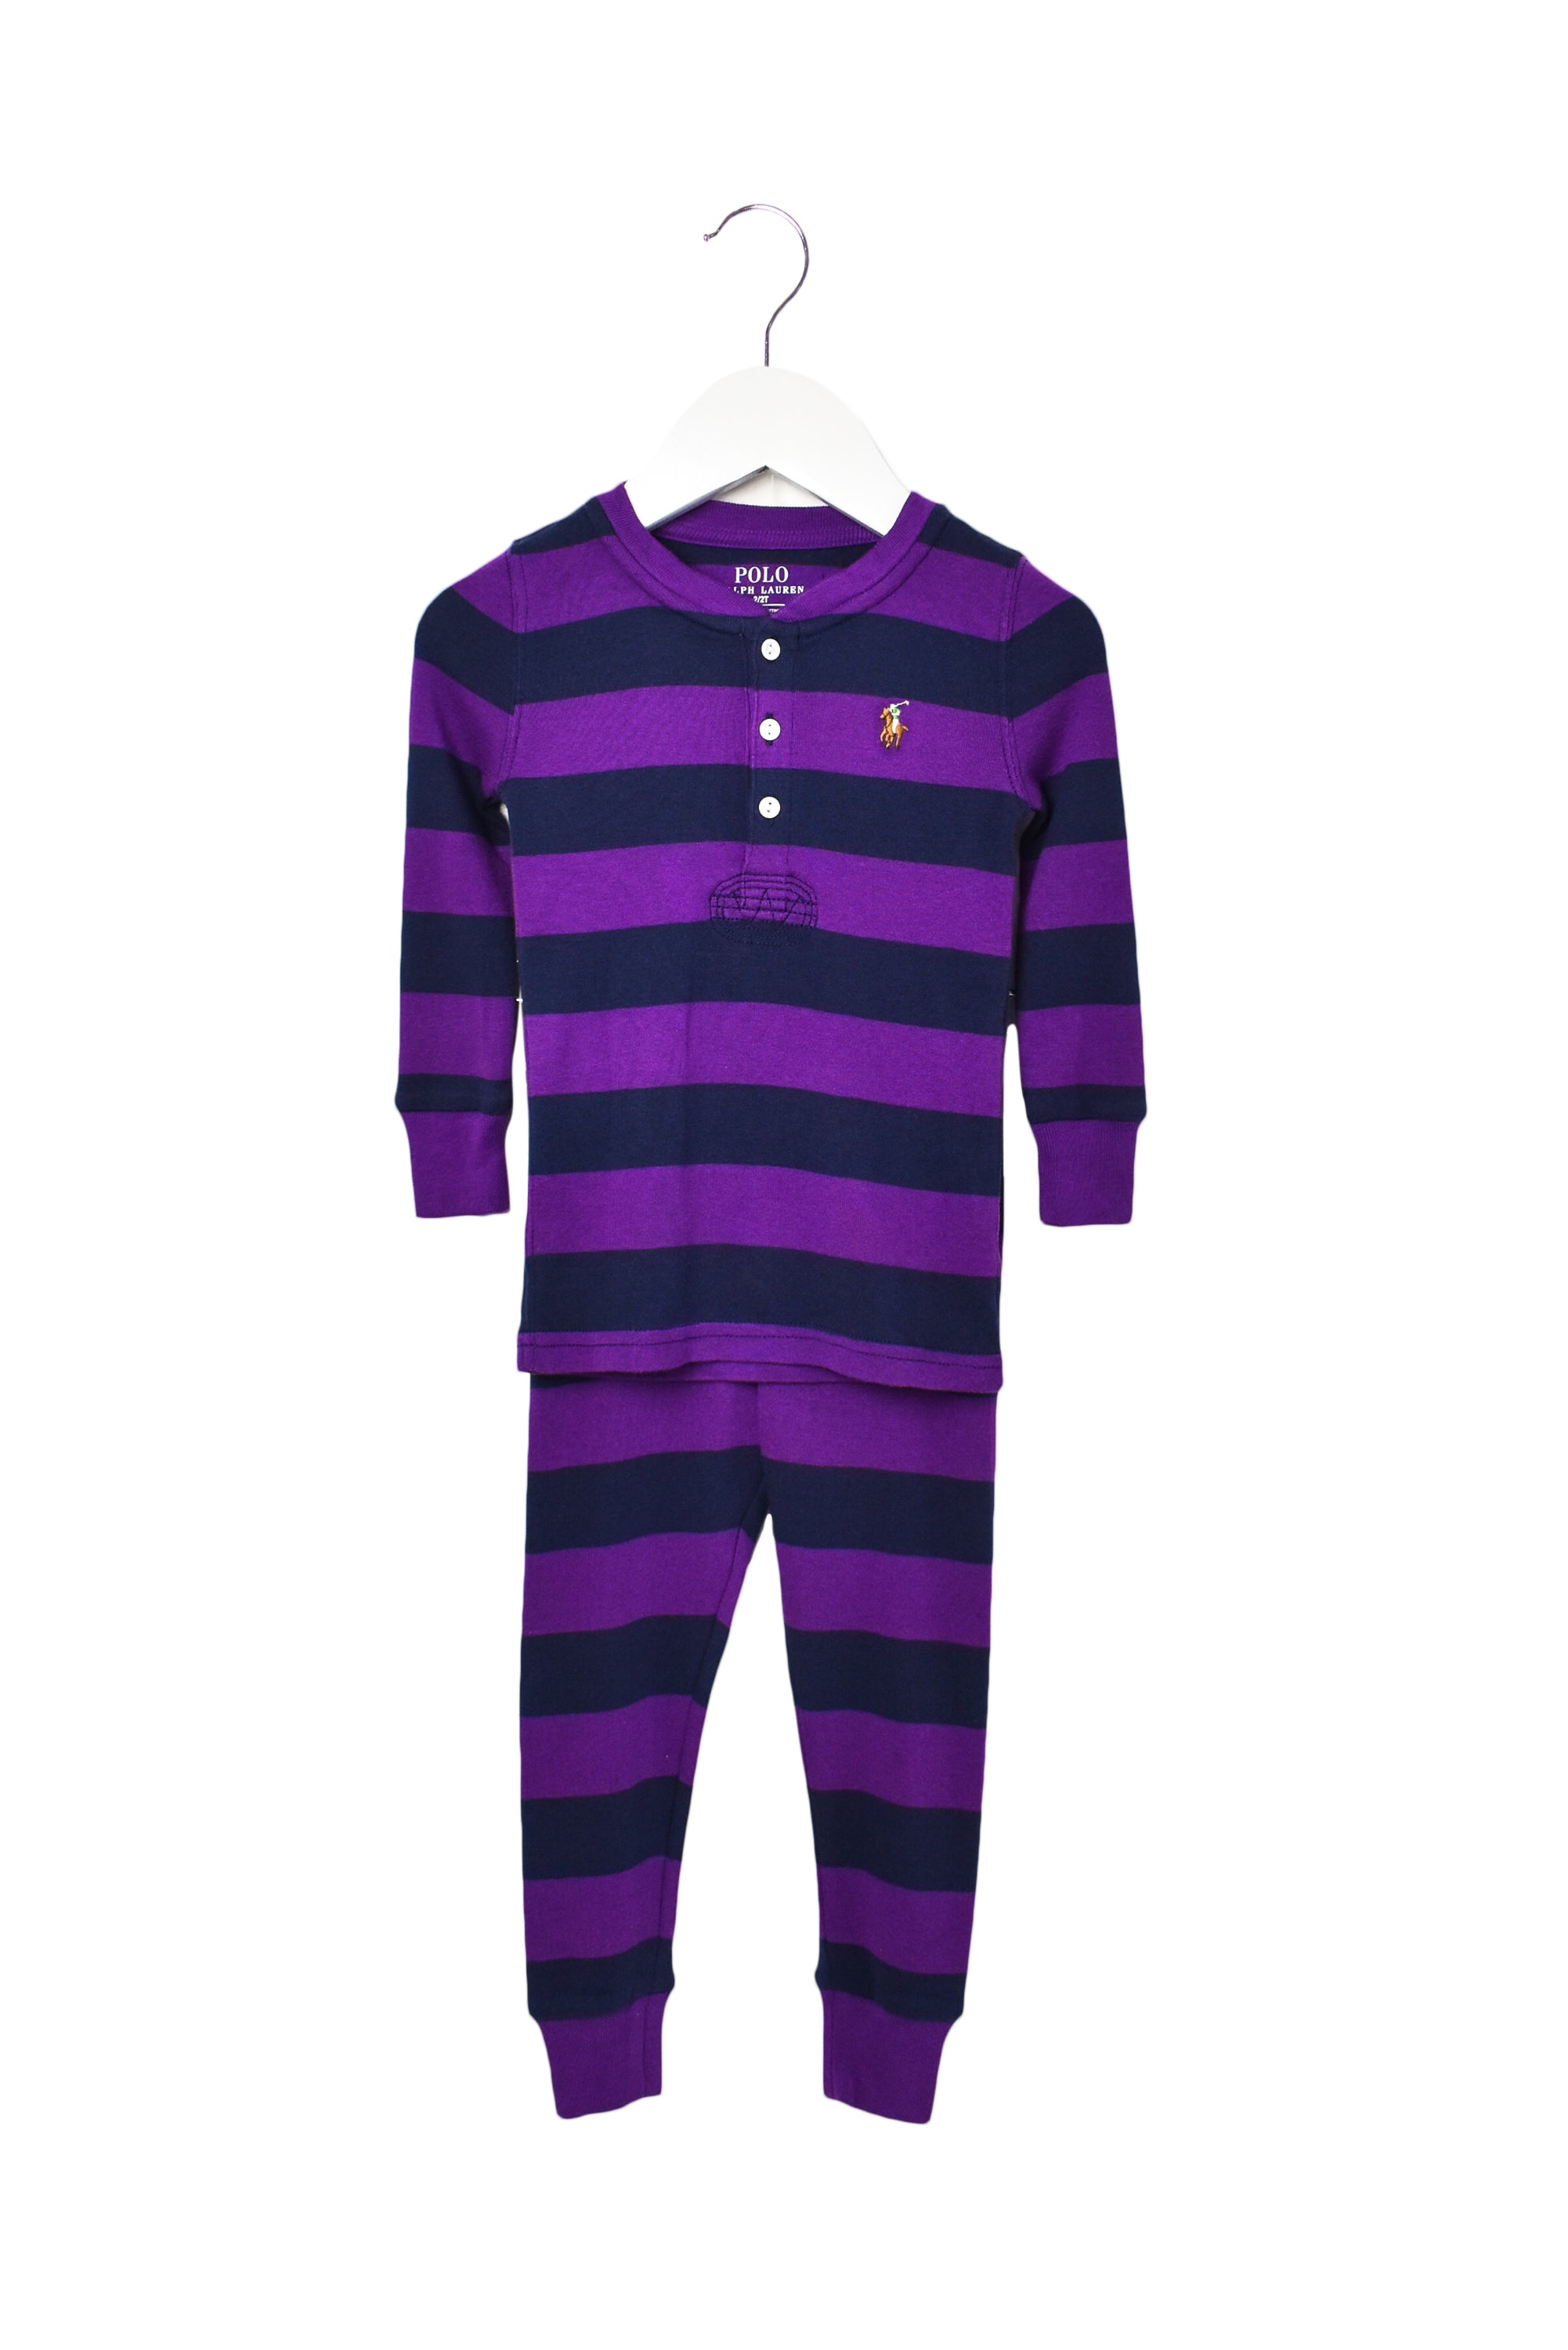 10006663 Polo Ralph Lauren Kids~Pyjamas 2T at Retykle